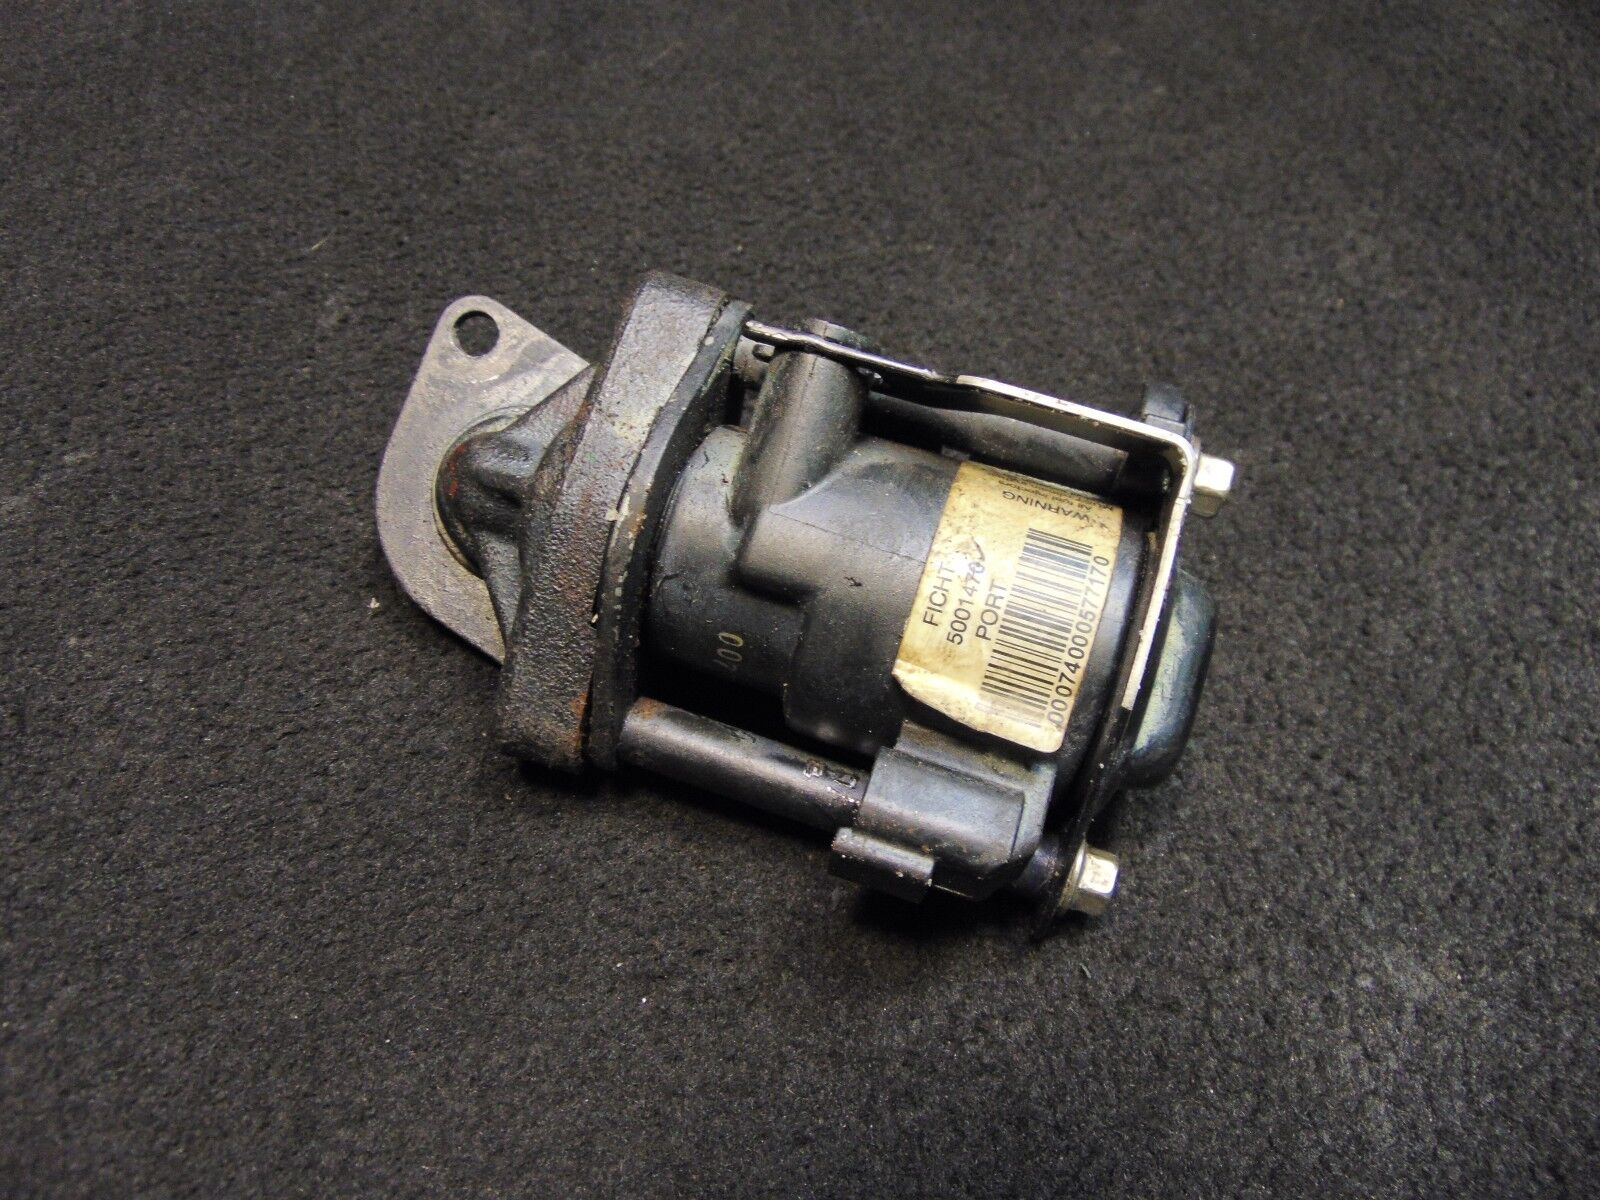 5004443 Injector Assembly PORT 2000 200-250 HP Johnson Evinrude Outboard Part #3